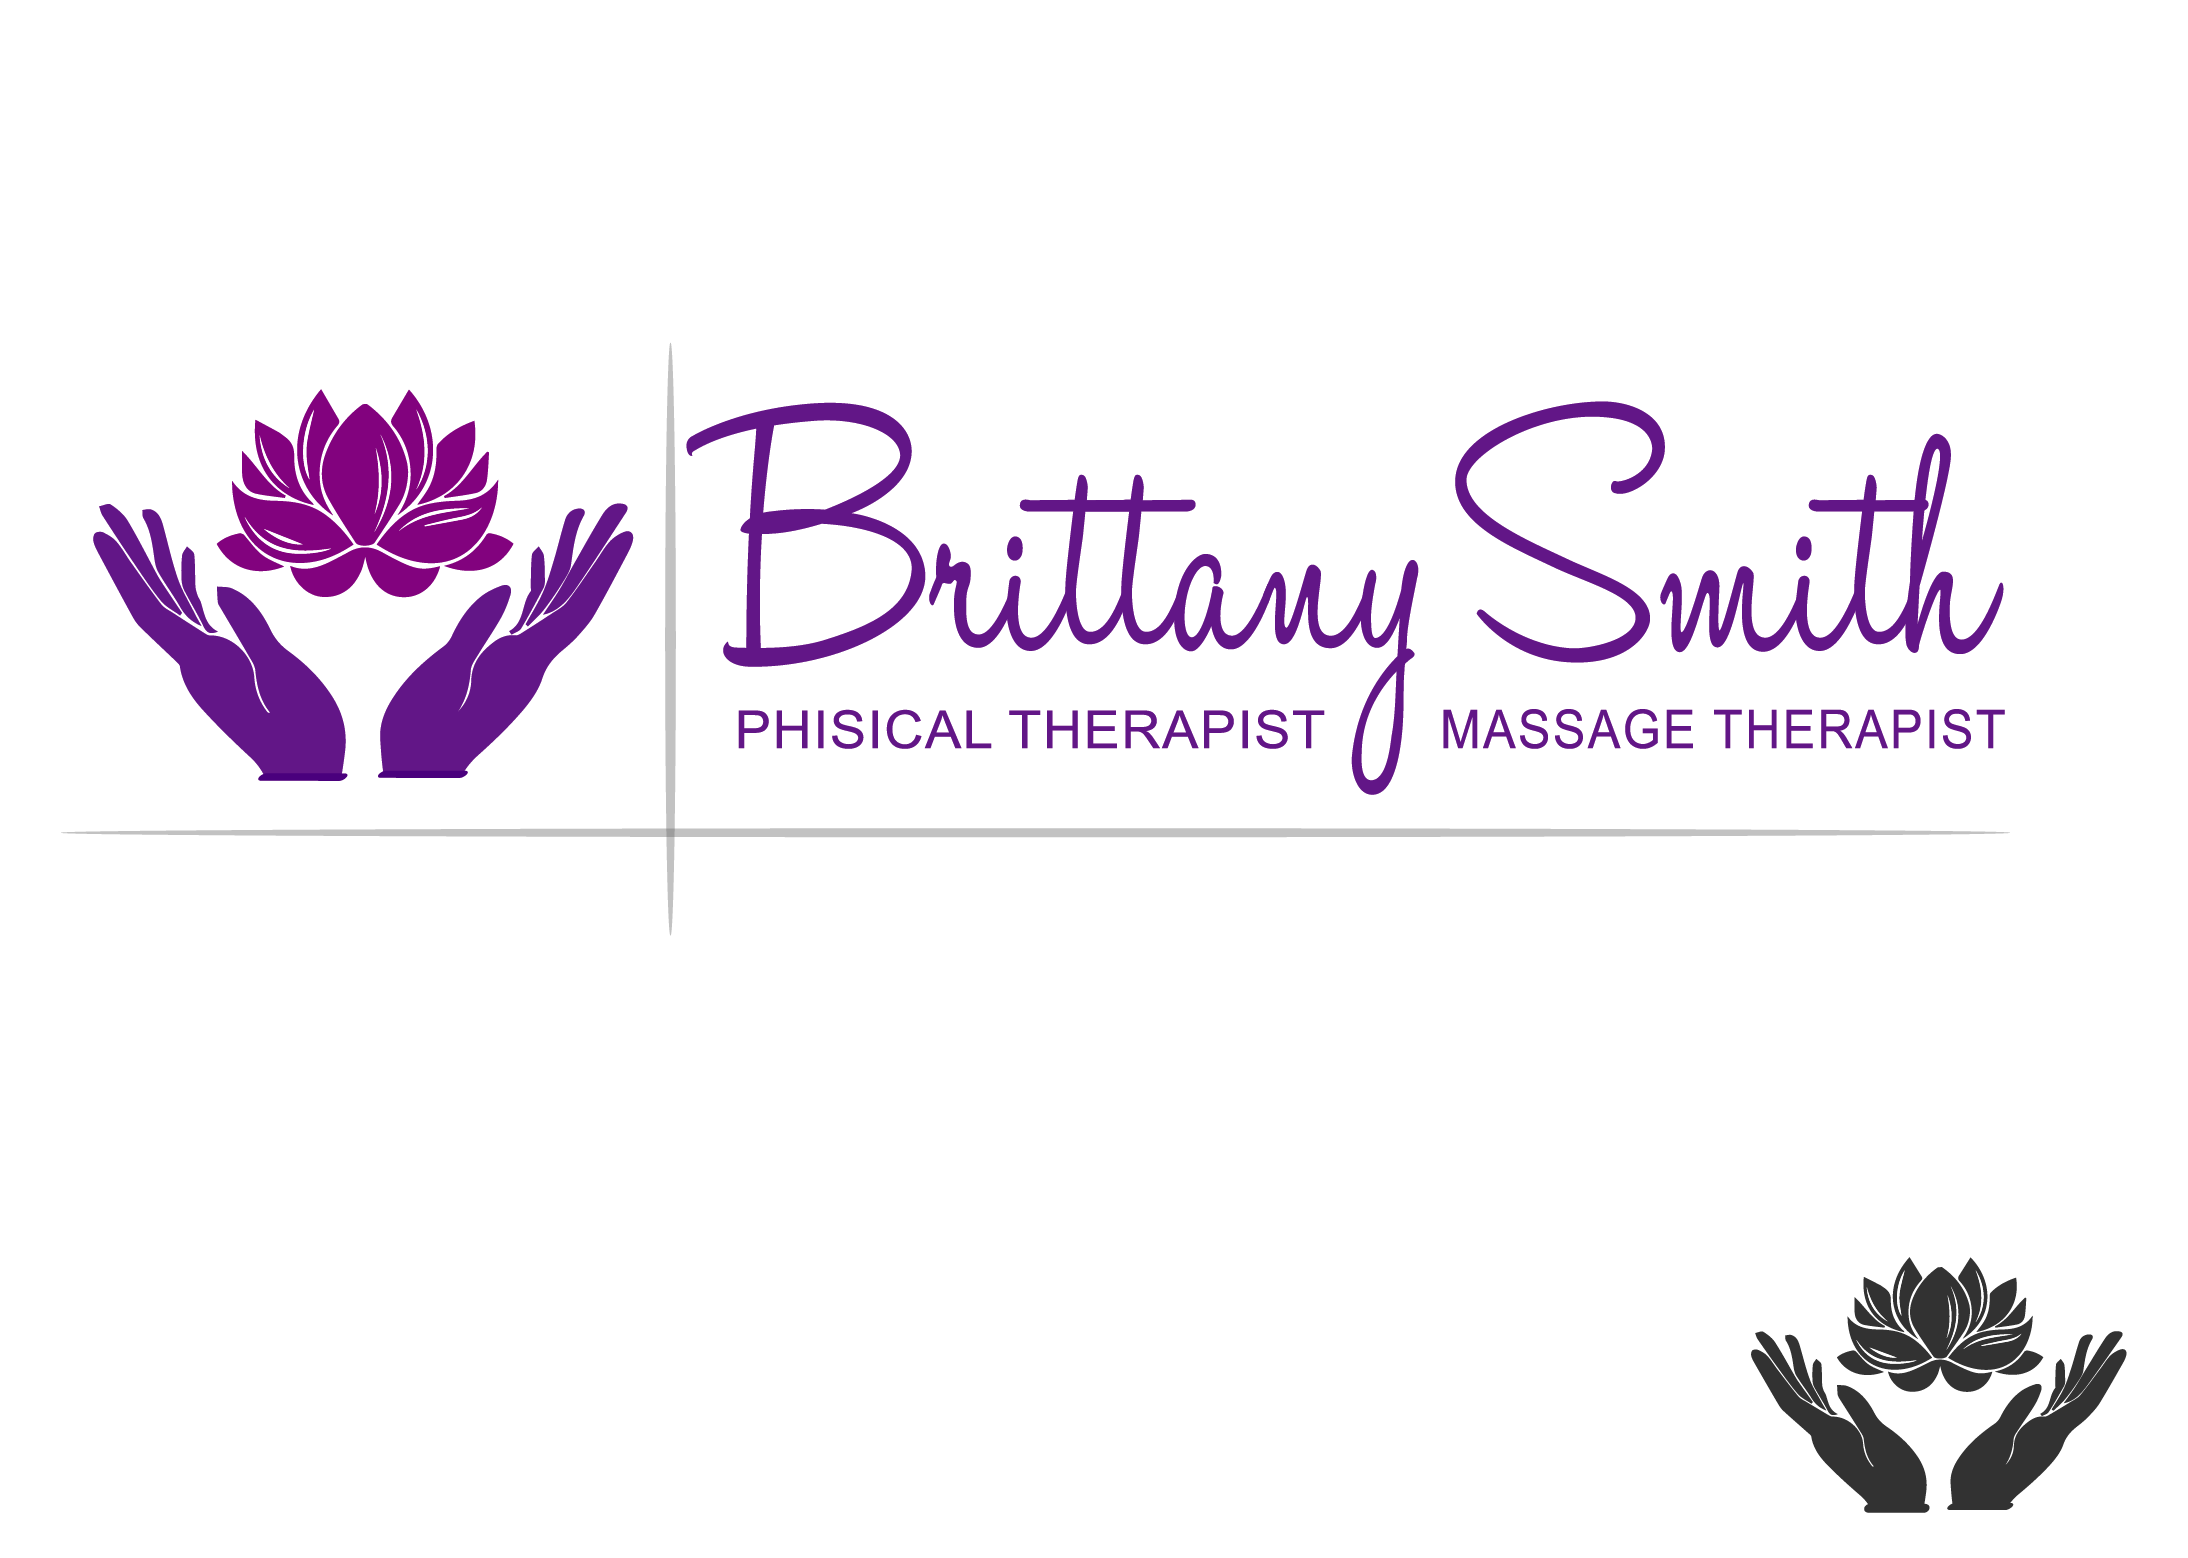 Logo Design by Maninder pal Singh - Entry No. 45 in the Logo Design Contest Artistic Logo Design for my personal massage therapy business.